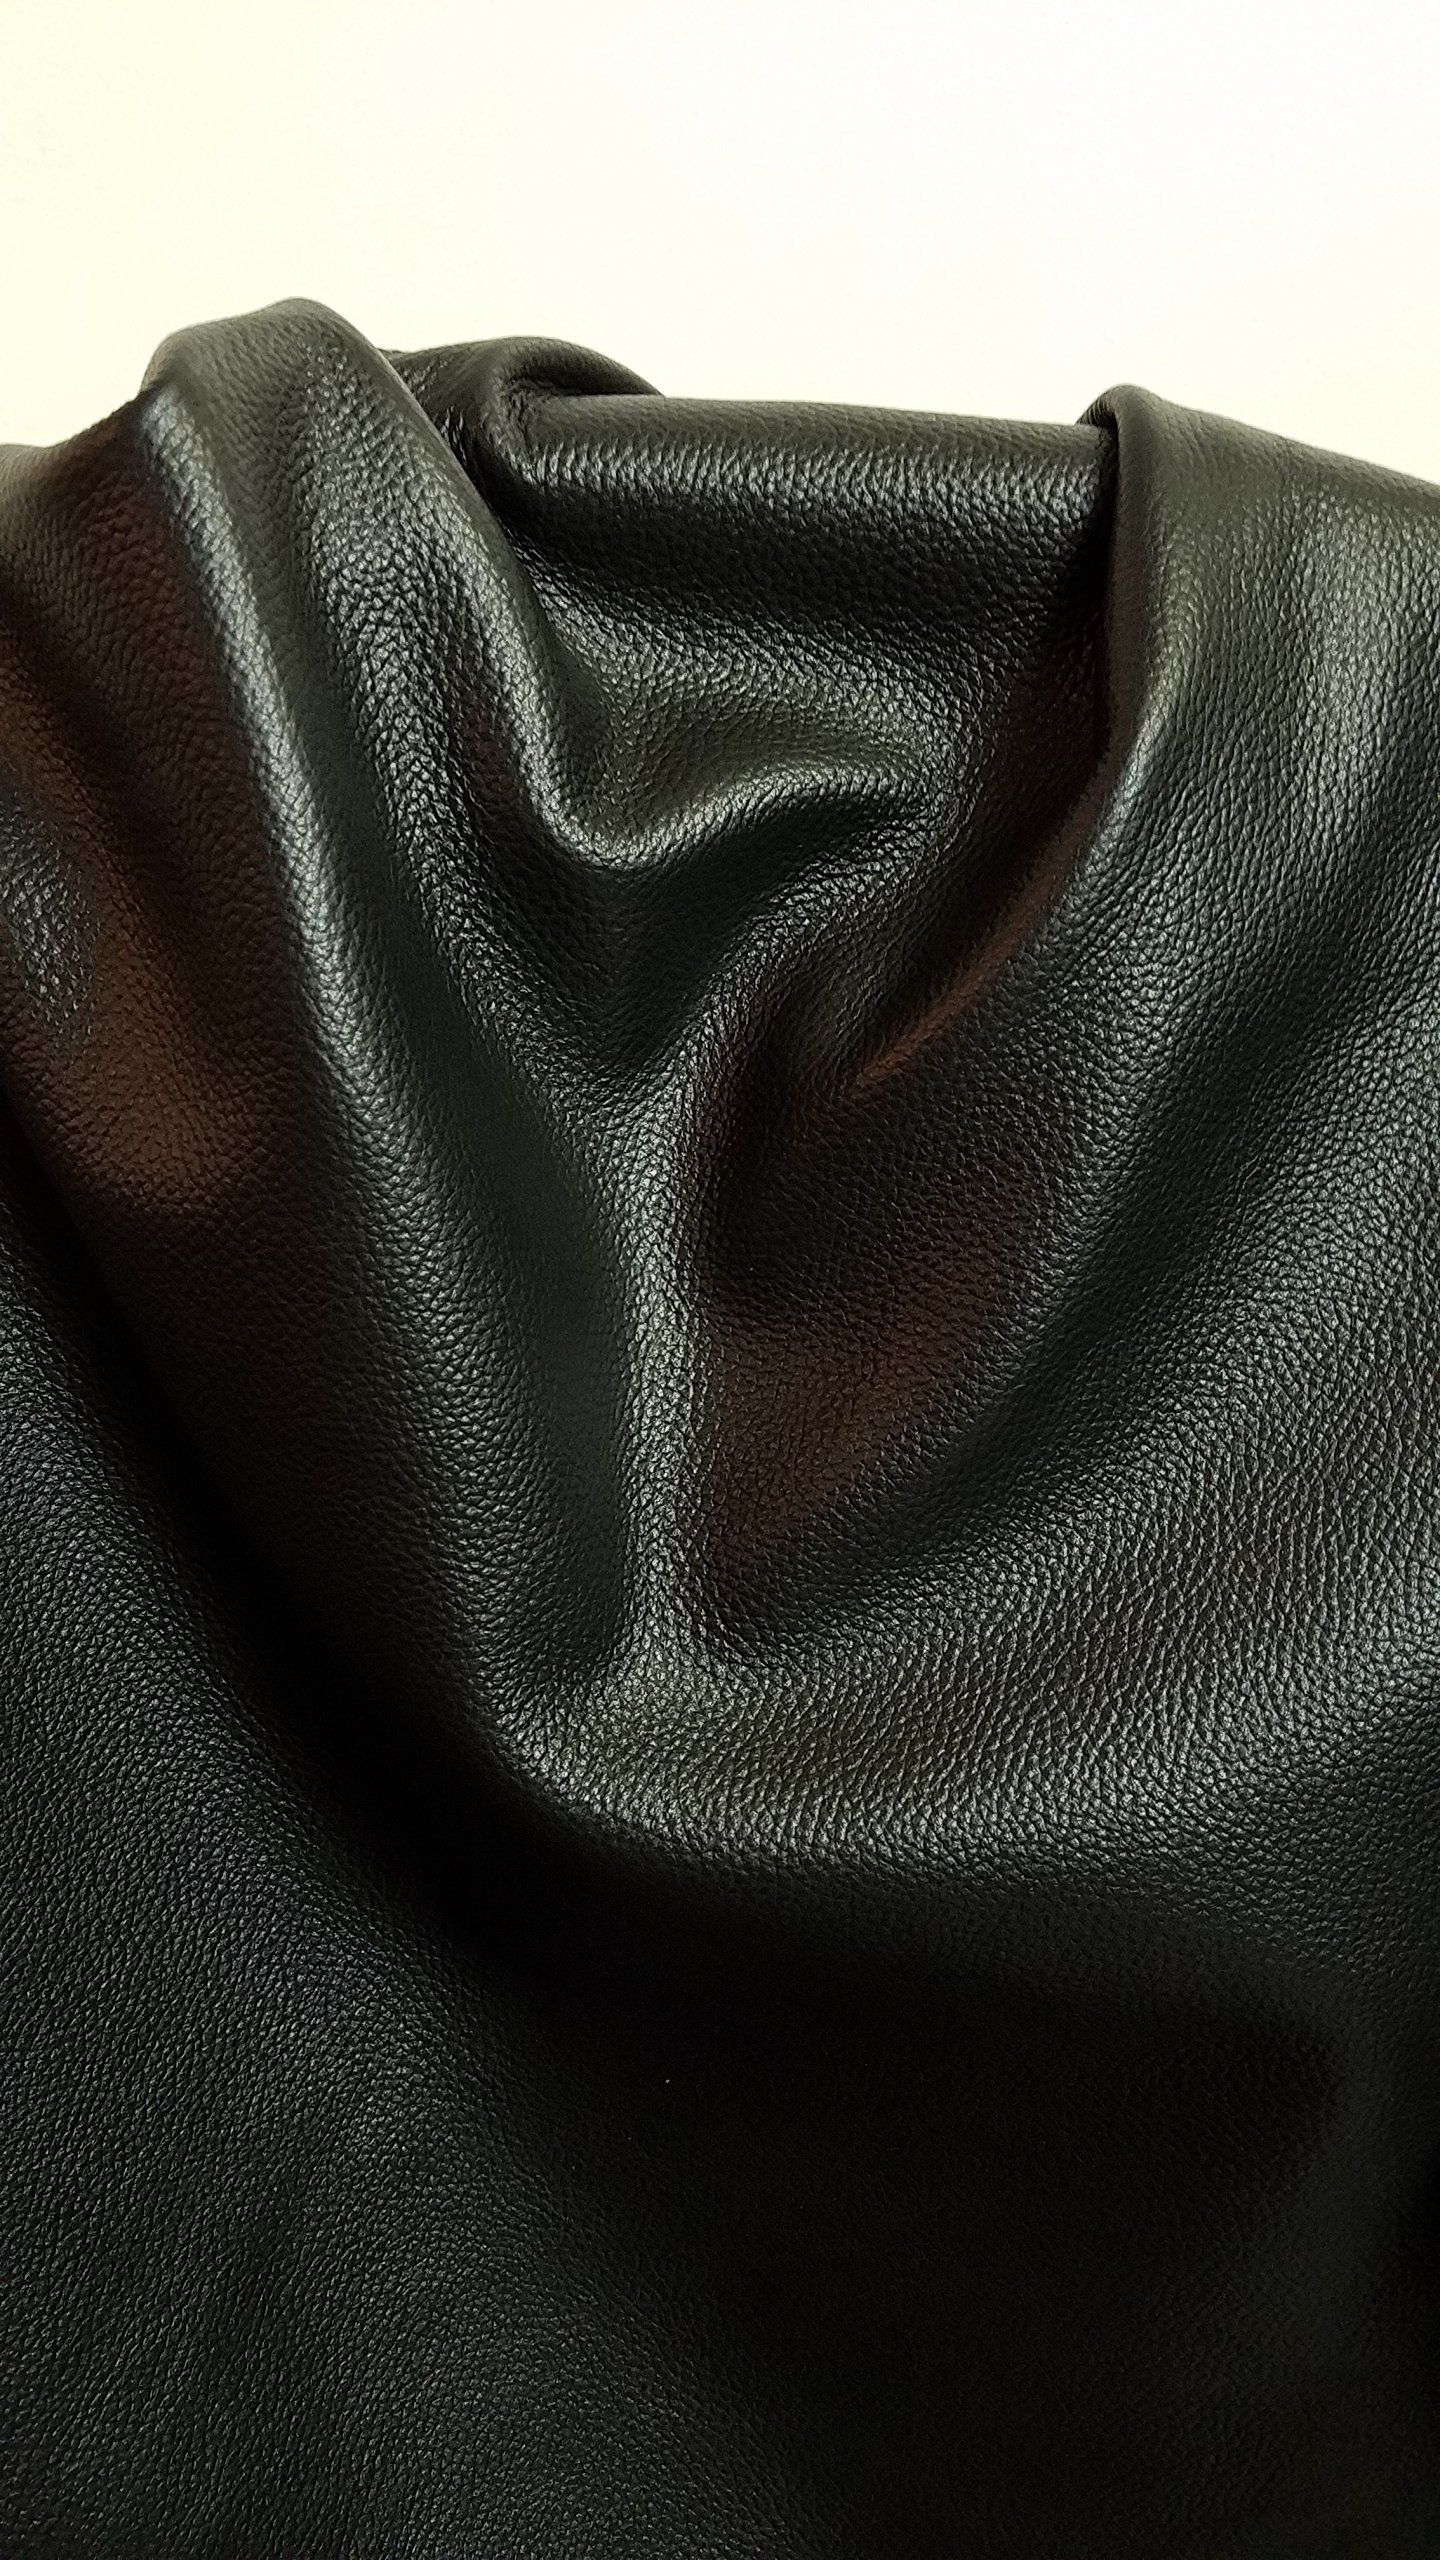 Black Upholstery pebbled Grainy Cow Cowhide Genuine Leather various size (20 sf) 2.5 oz Soft NAT Leathers